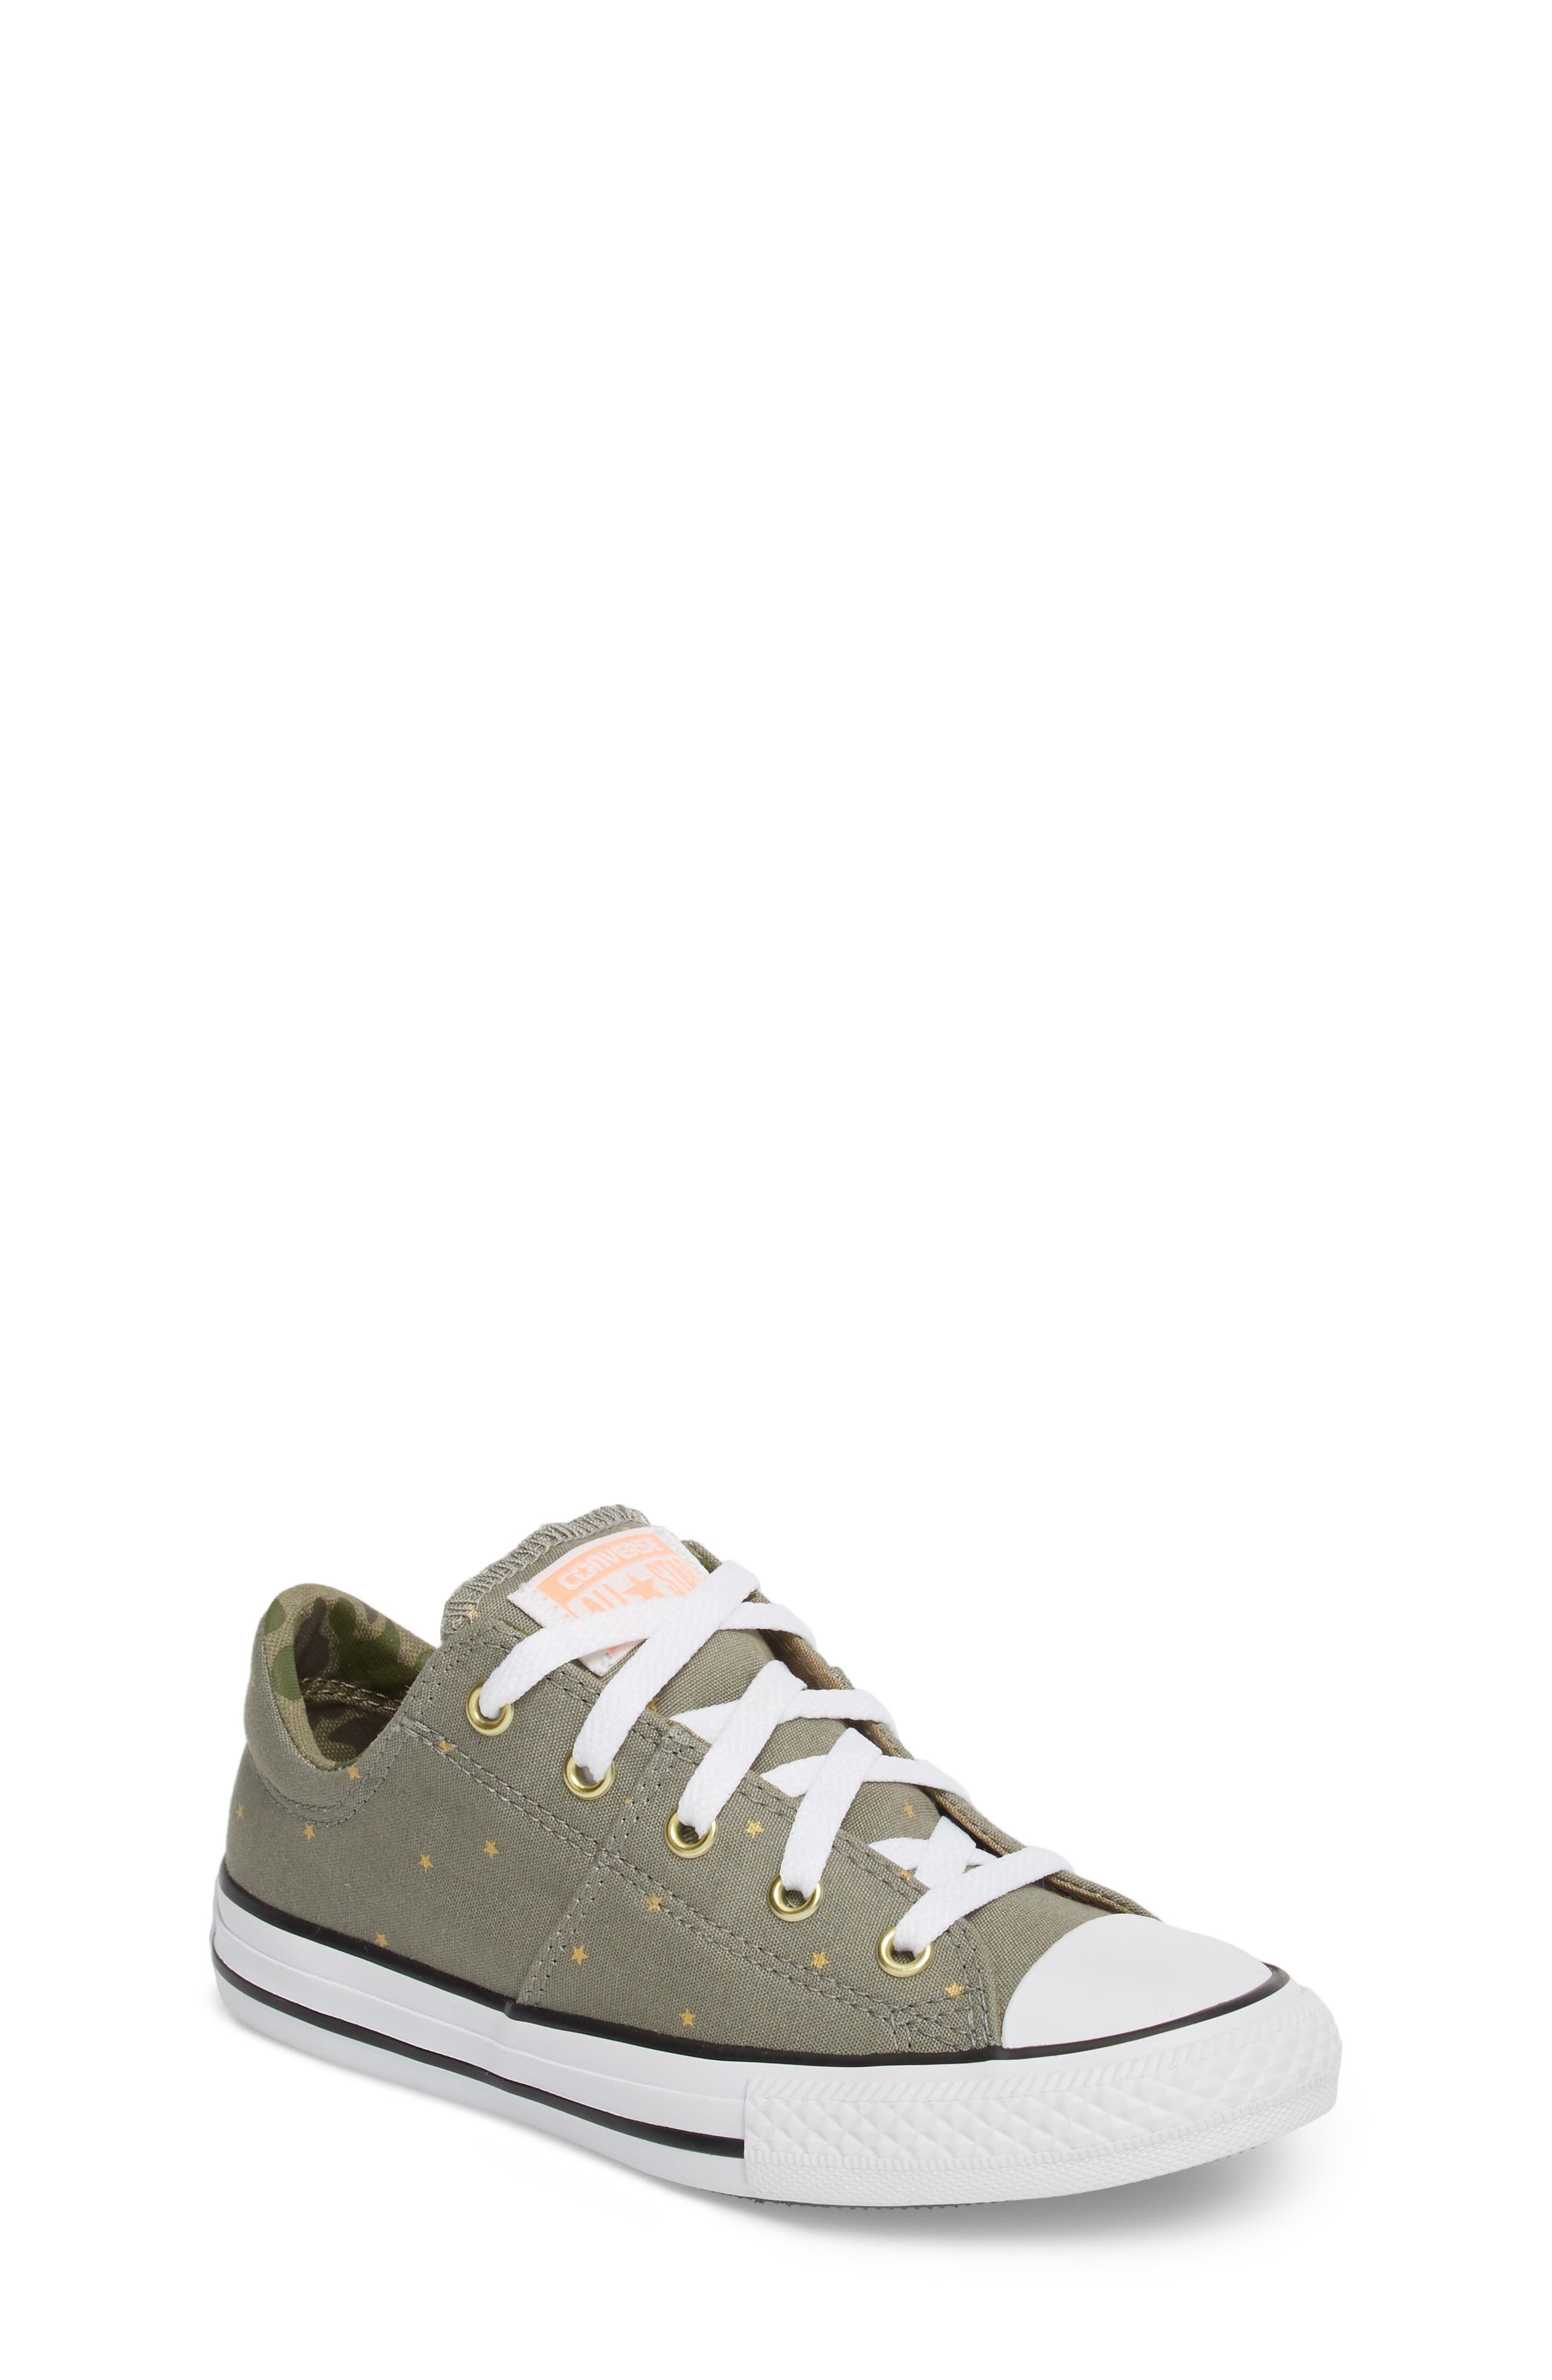 All Star<sup>®</sup> Madison Patterned Low Top Sneaker,                             Main thumbnail 1, color,                             022